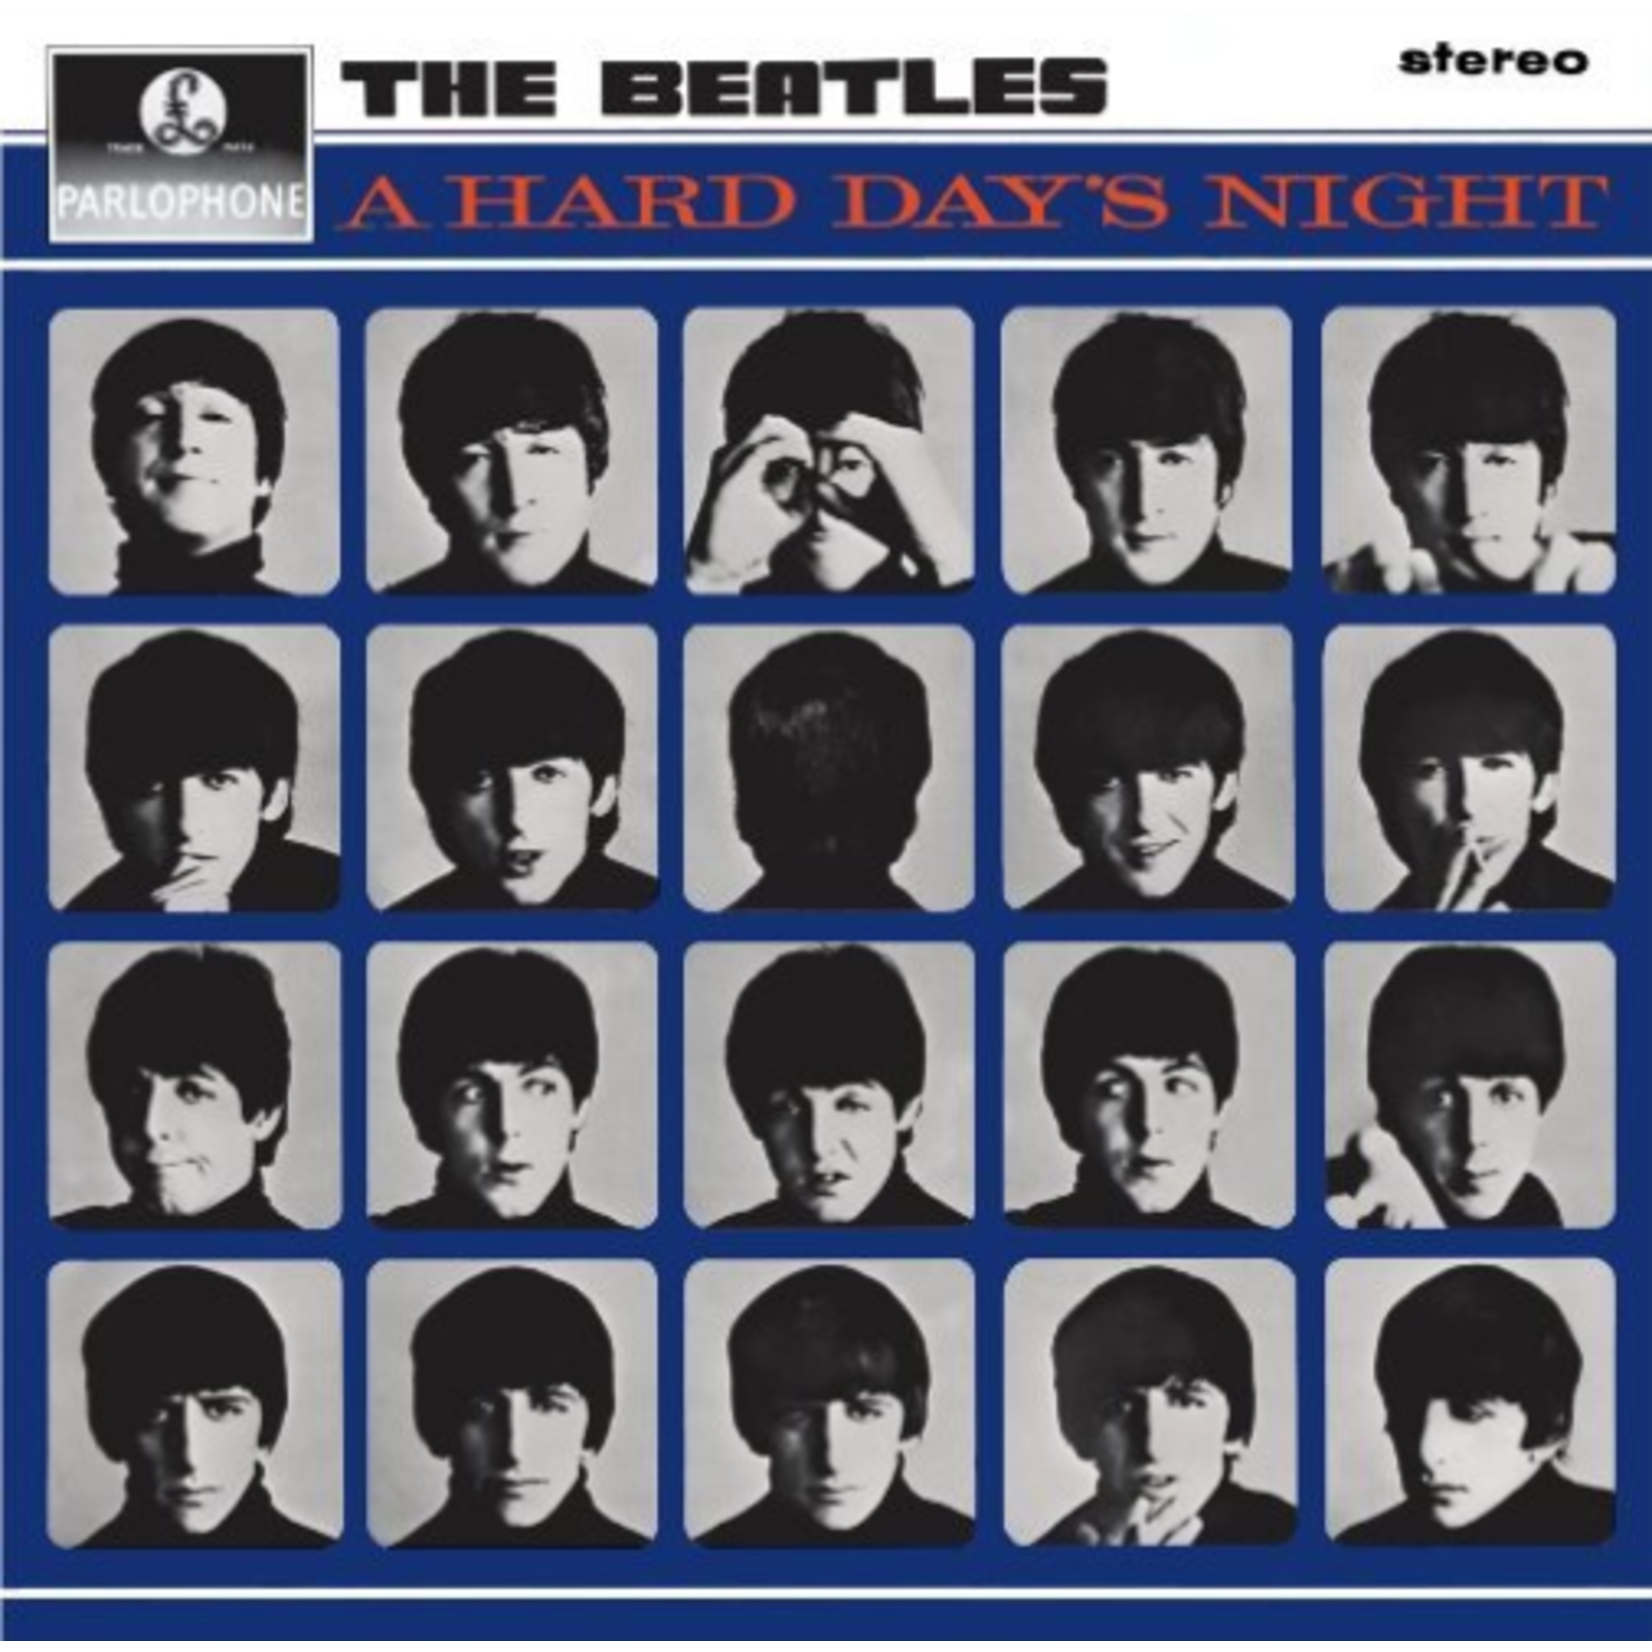 THE BEATLES A HARD DAY'S NIGHT (STEREO REMASTERED)